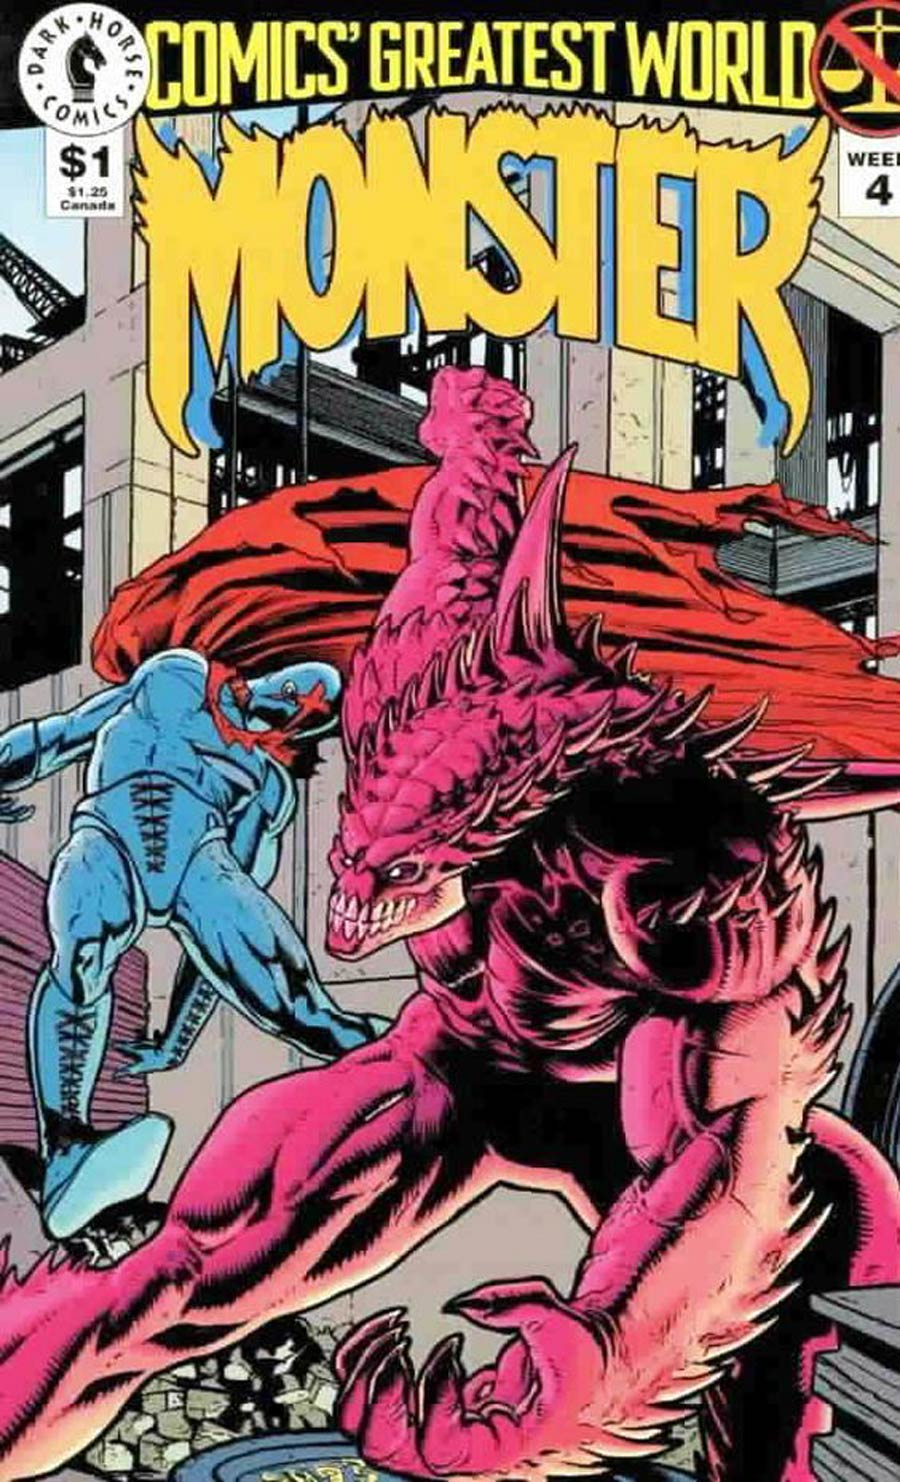 Comics Greatest World Arcadia Week #4 Monster